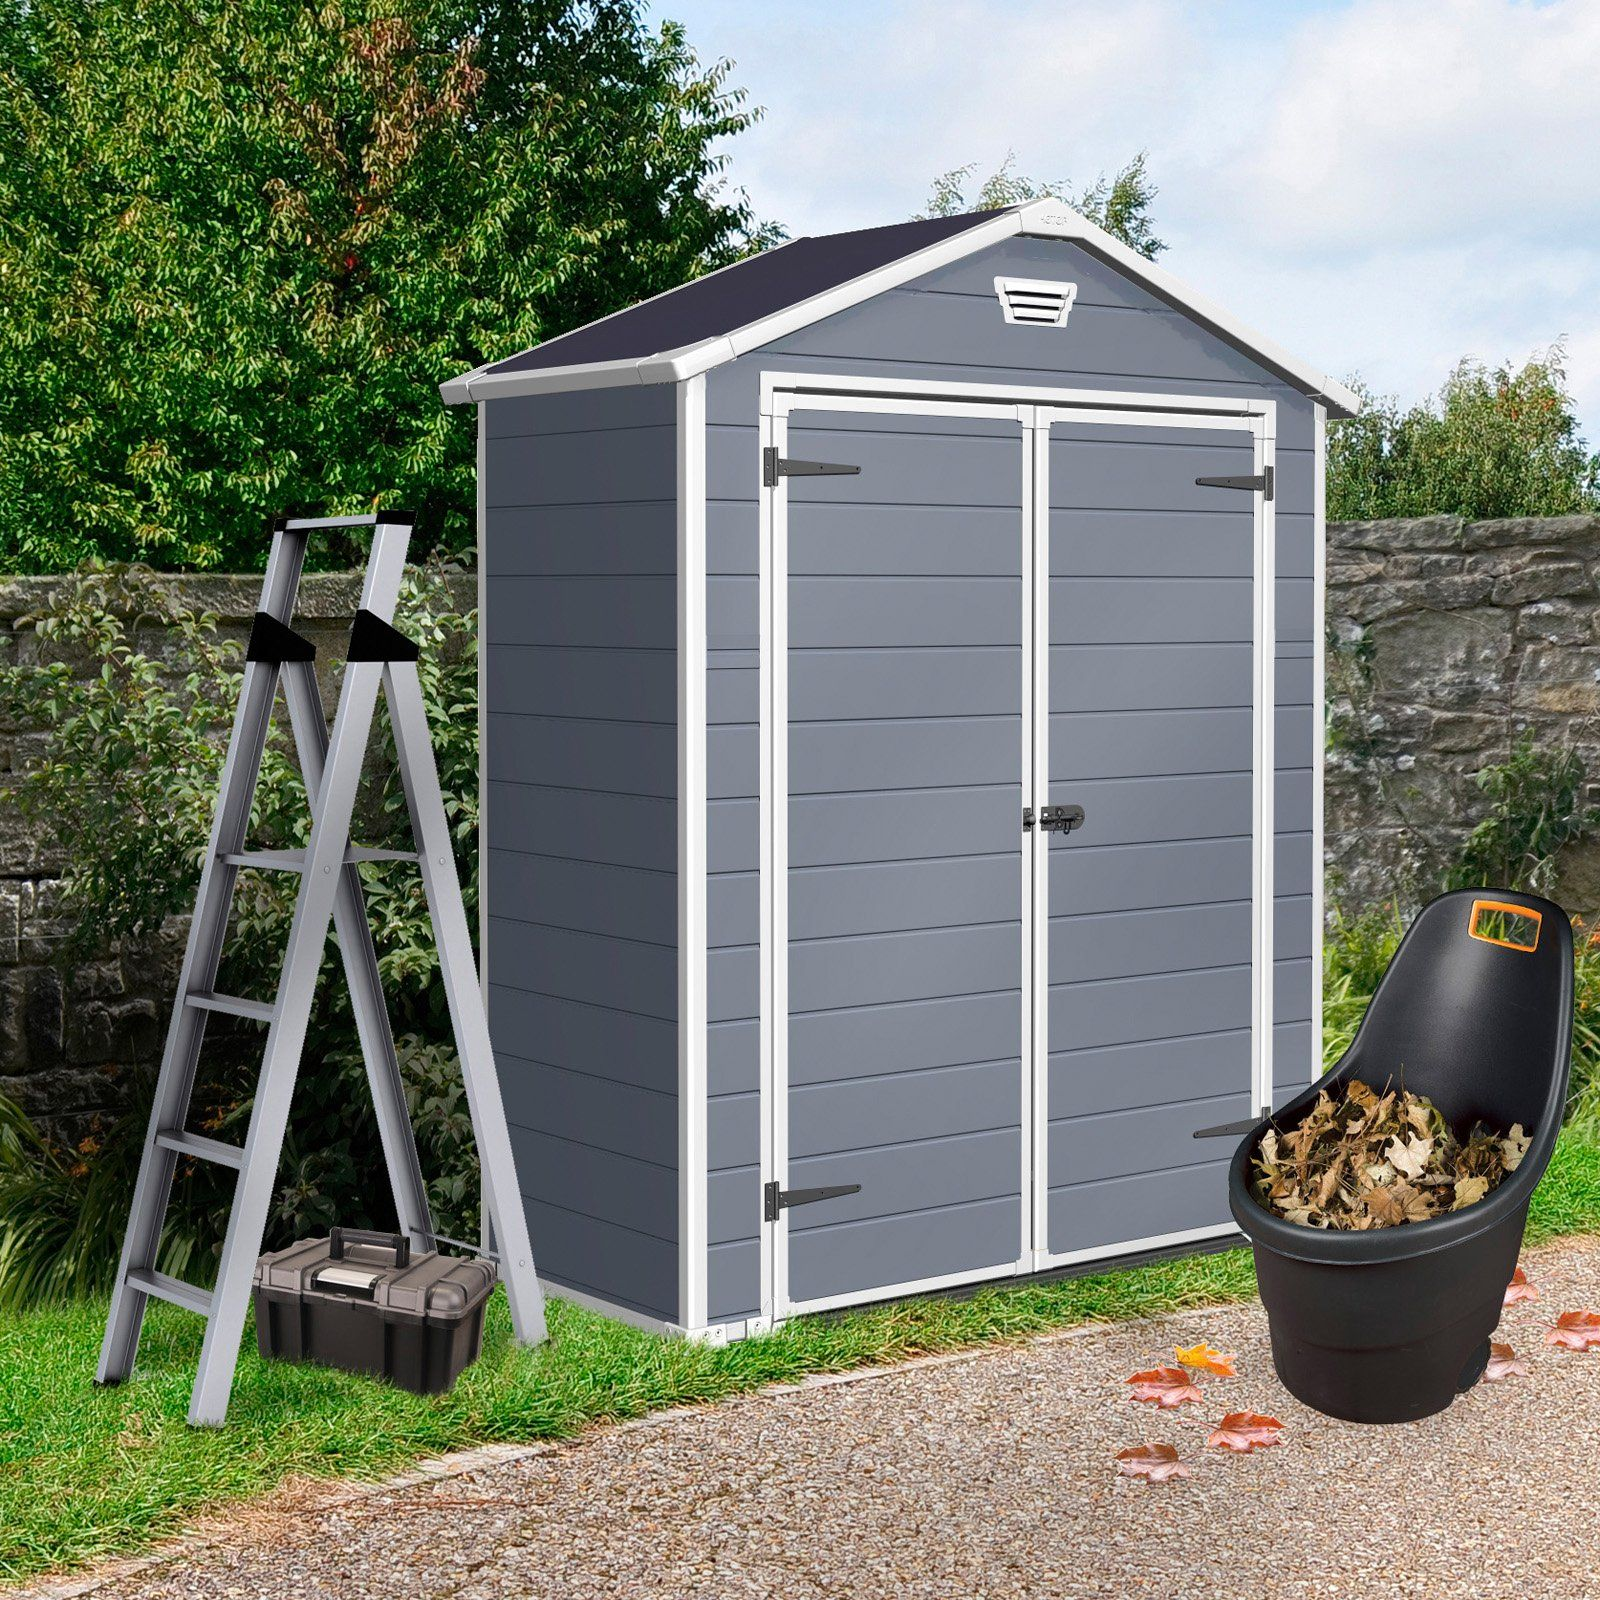 keter manor 6 x 3 ft storage shed 59999 - Garden Sheds 6 X 3